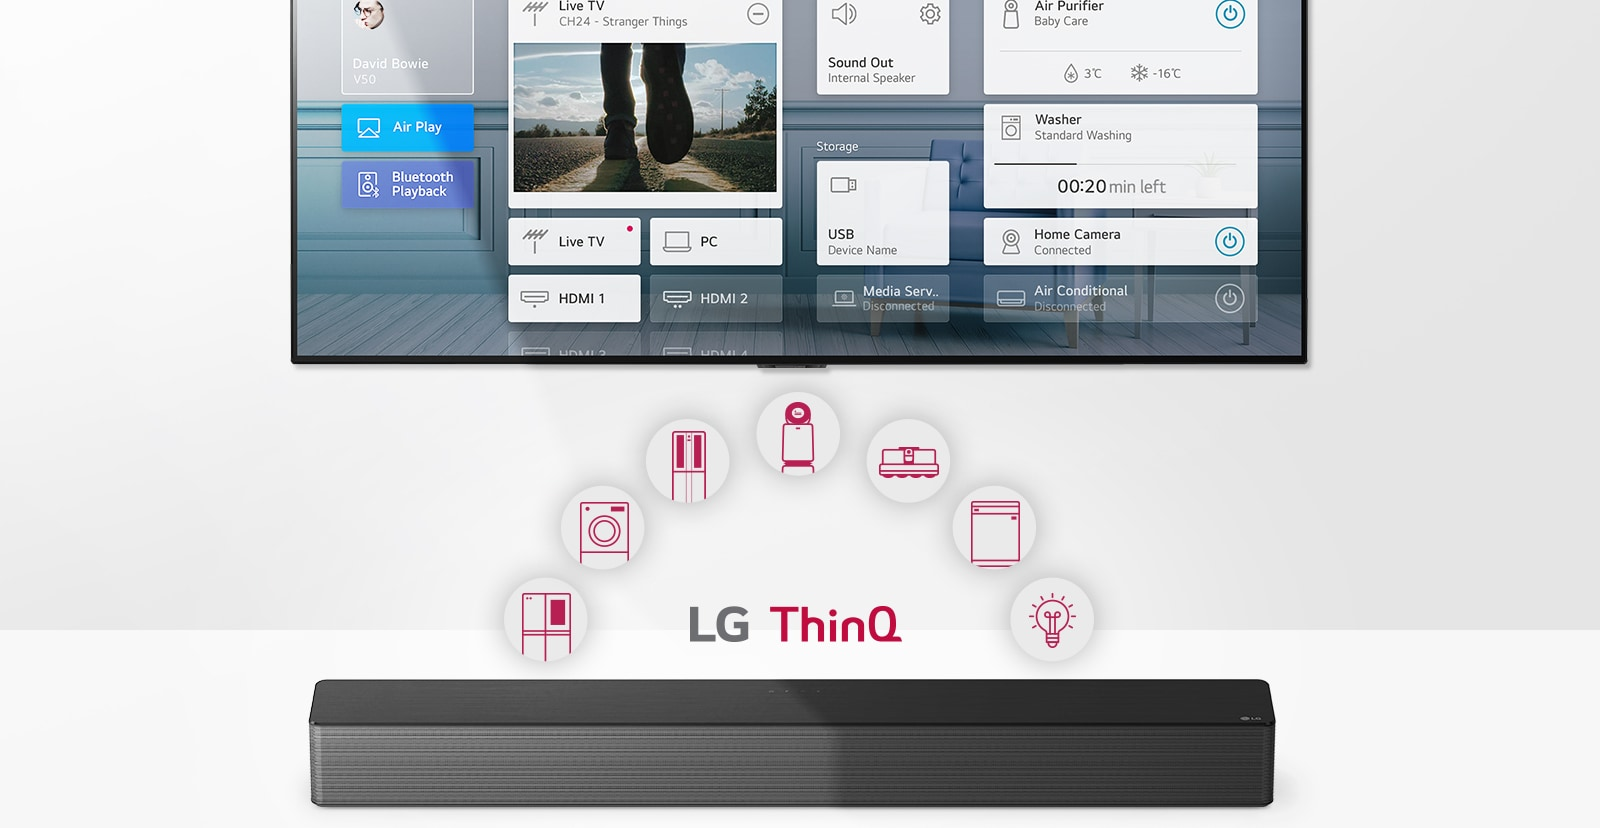 TV is on the wall. LG Soundbar is below the TV. LG ThinQ logo and appliance icons are shown between the TV and LG Soundbar.